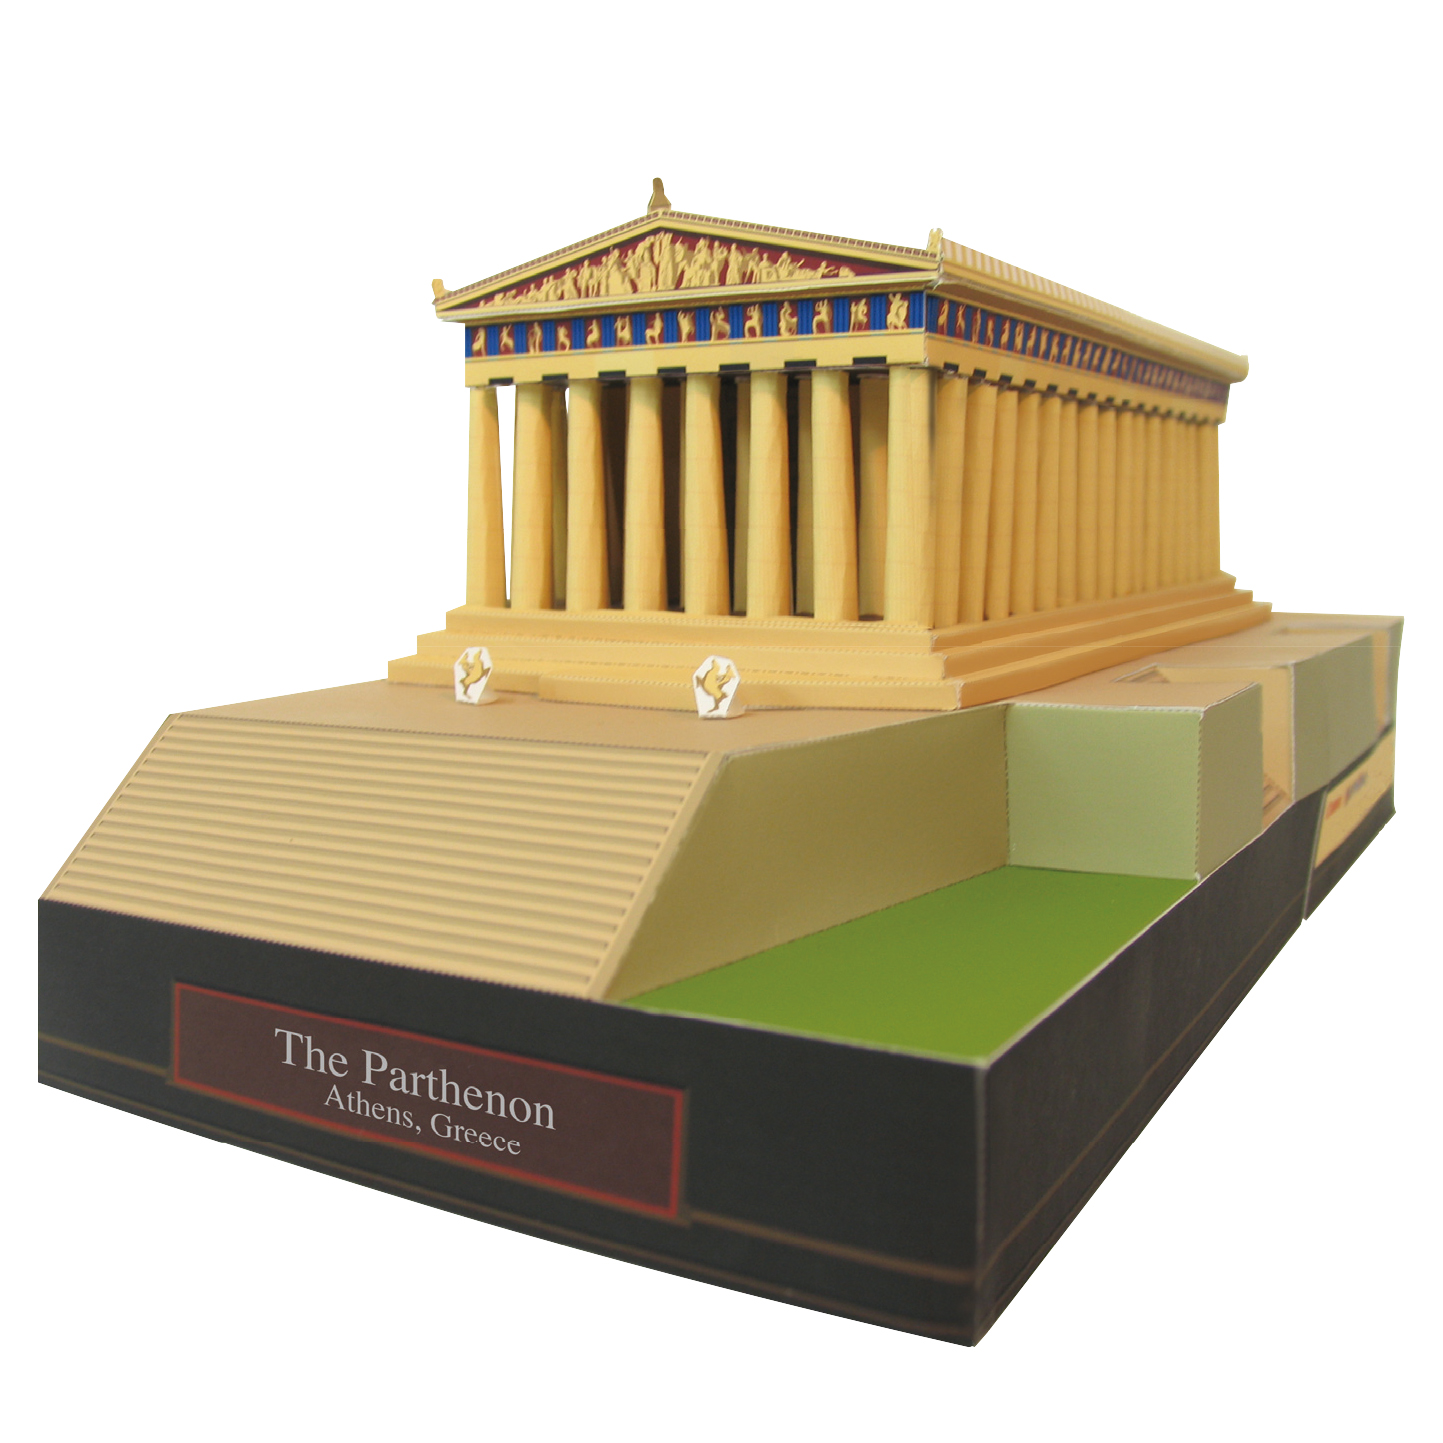 The Parthenon, Greece Craft Paper Model Architecture 3D  DIY Education Toys Handmade Adult Puzzle Game